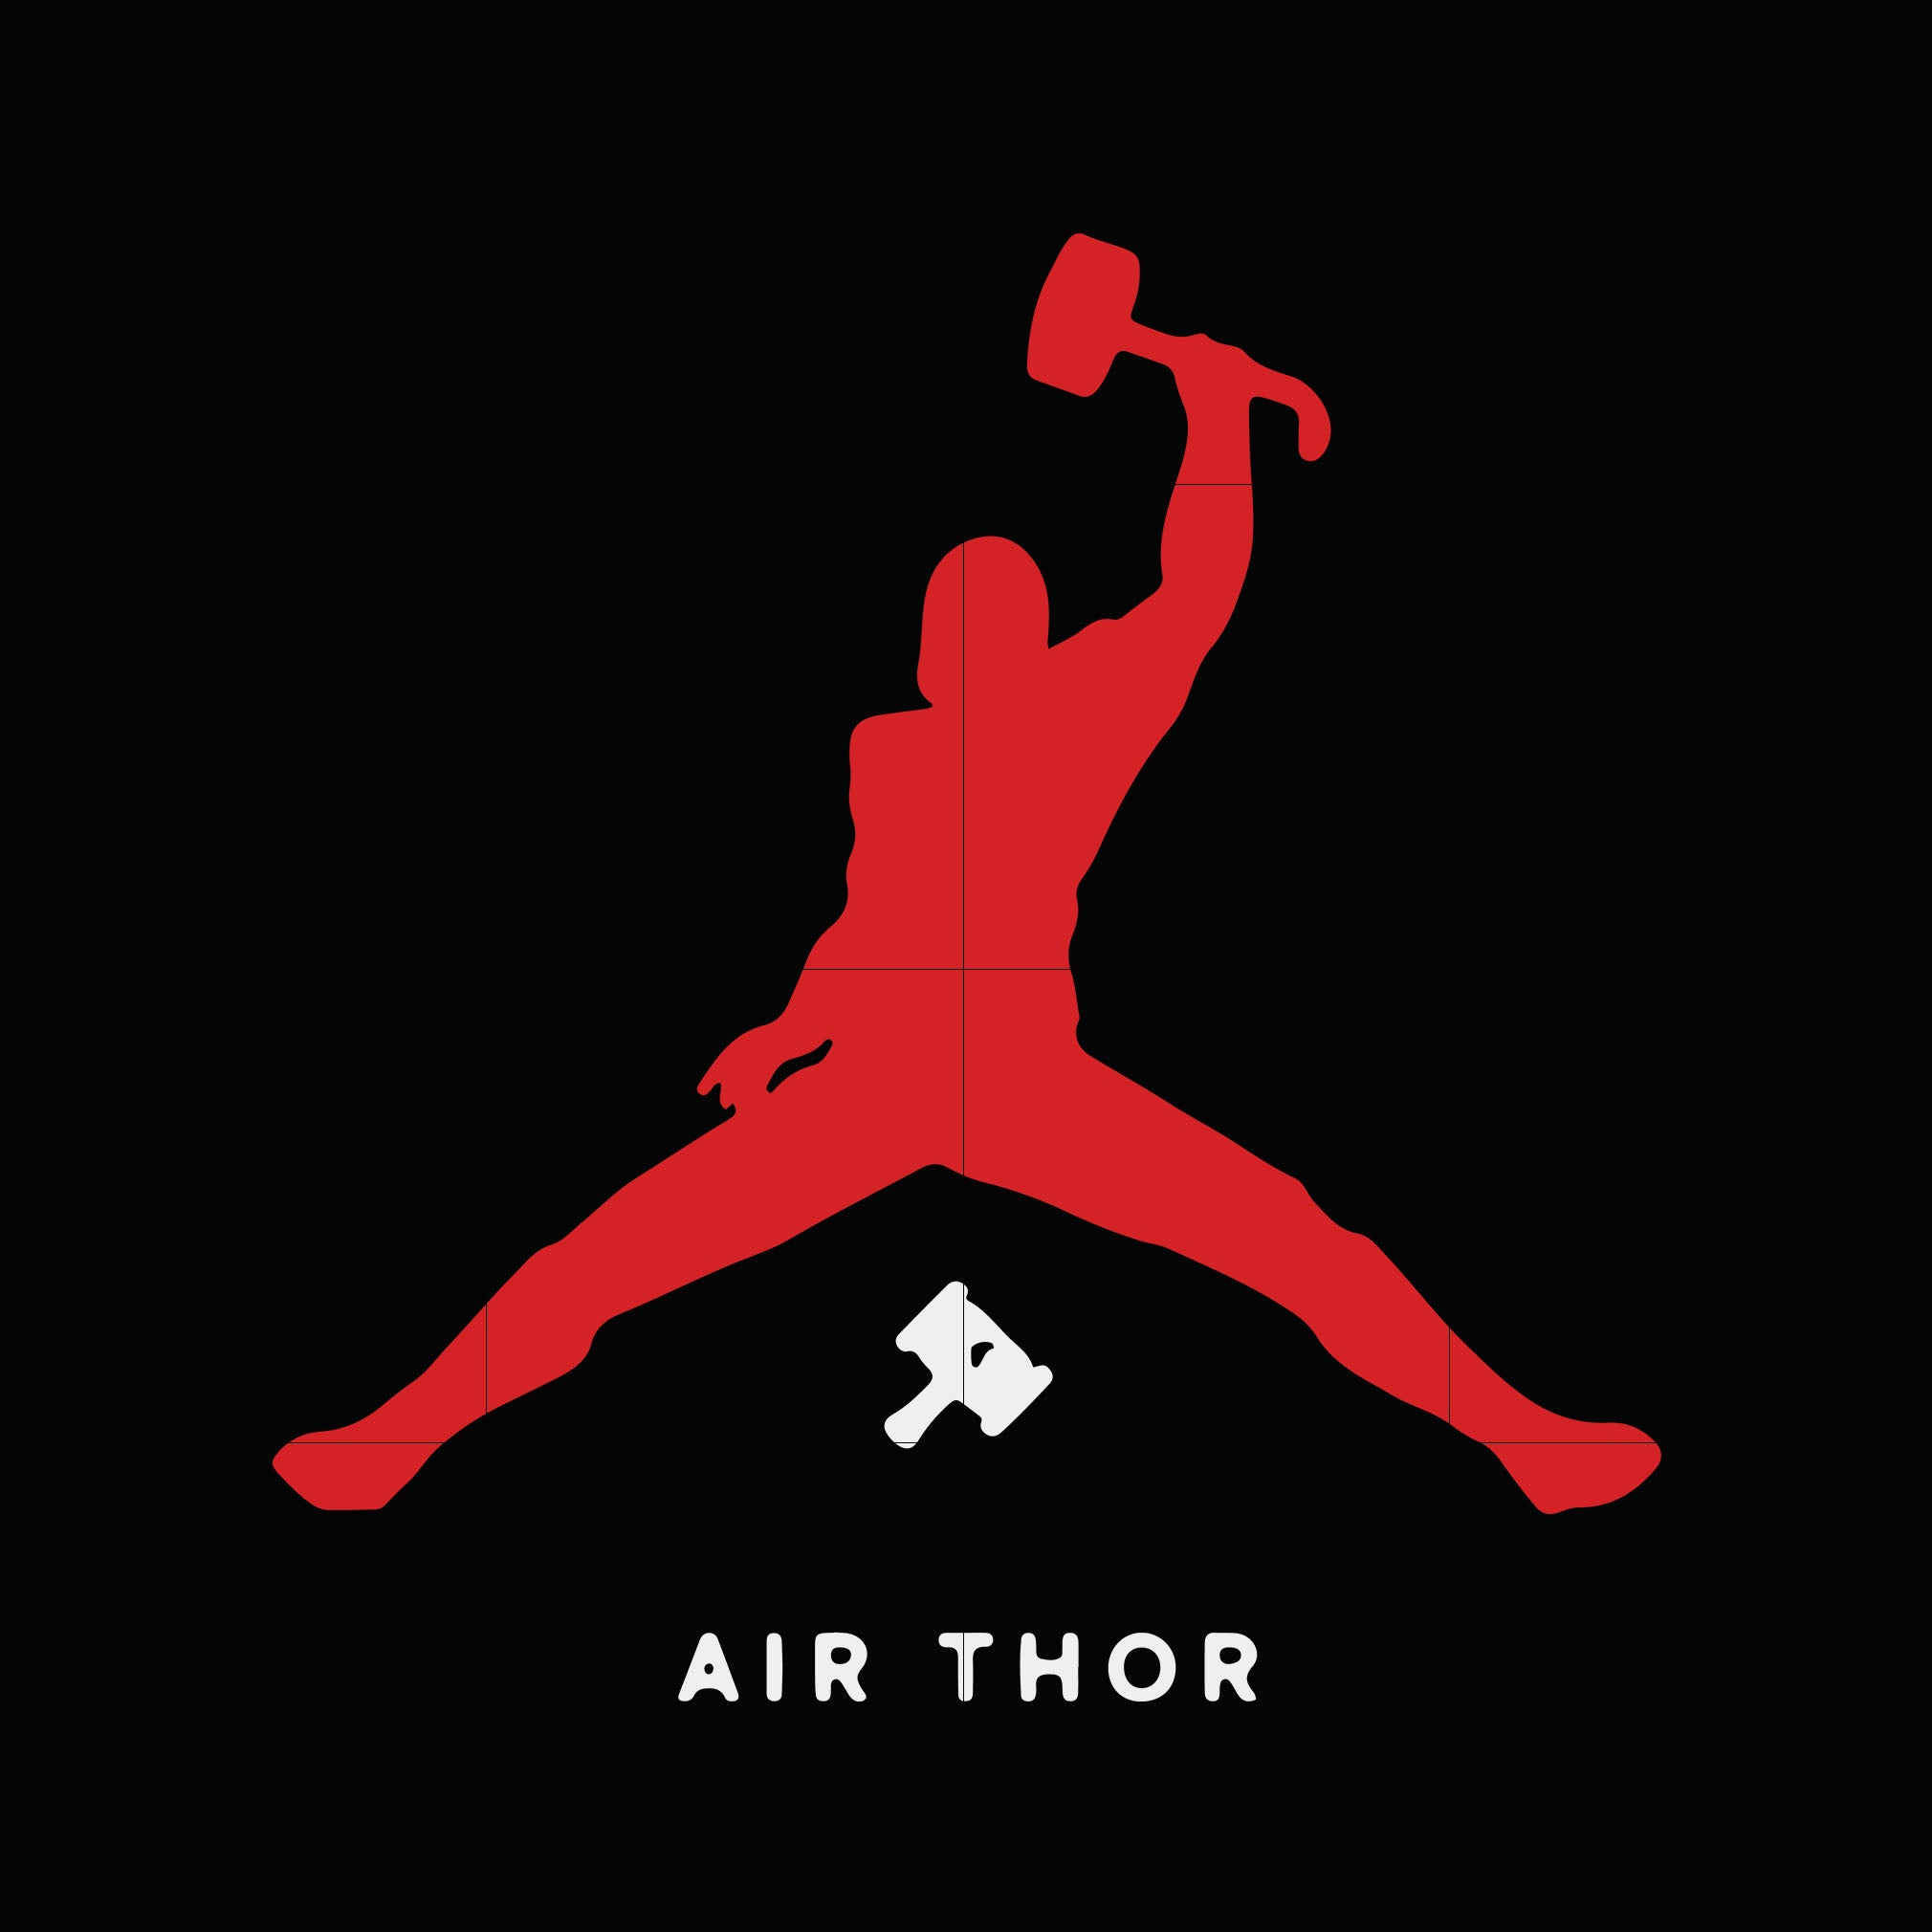 Air thor svg ,dxf,eps,png digital file